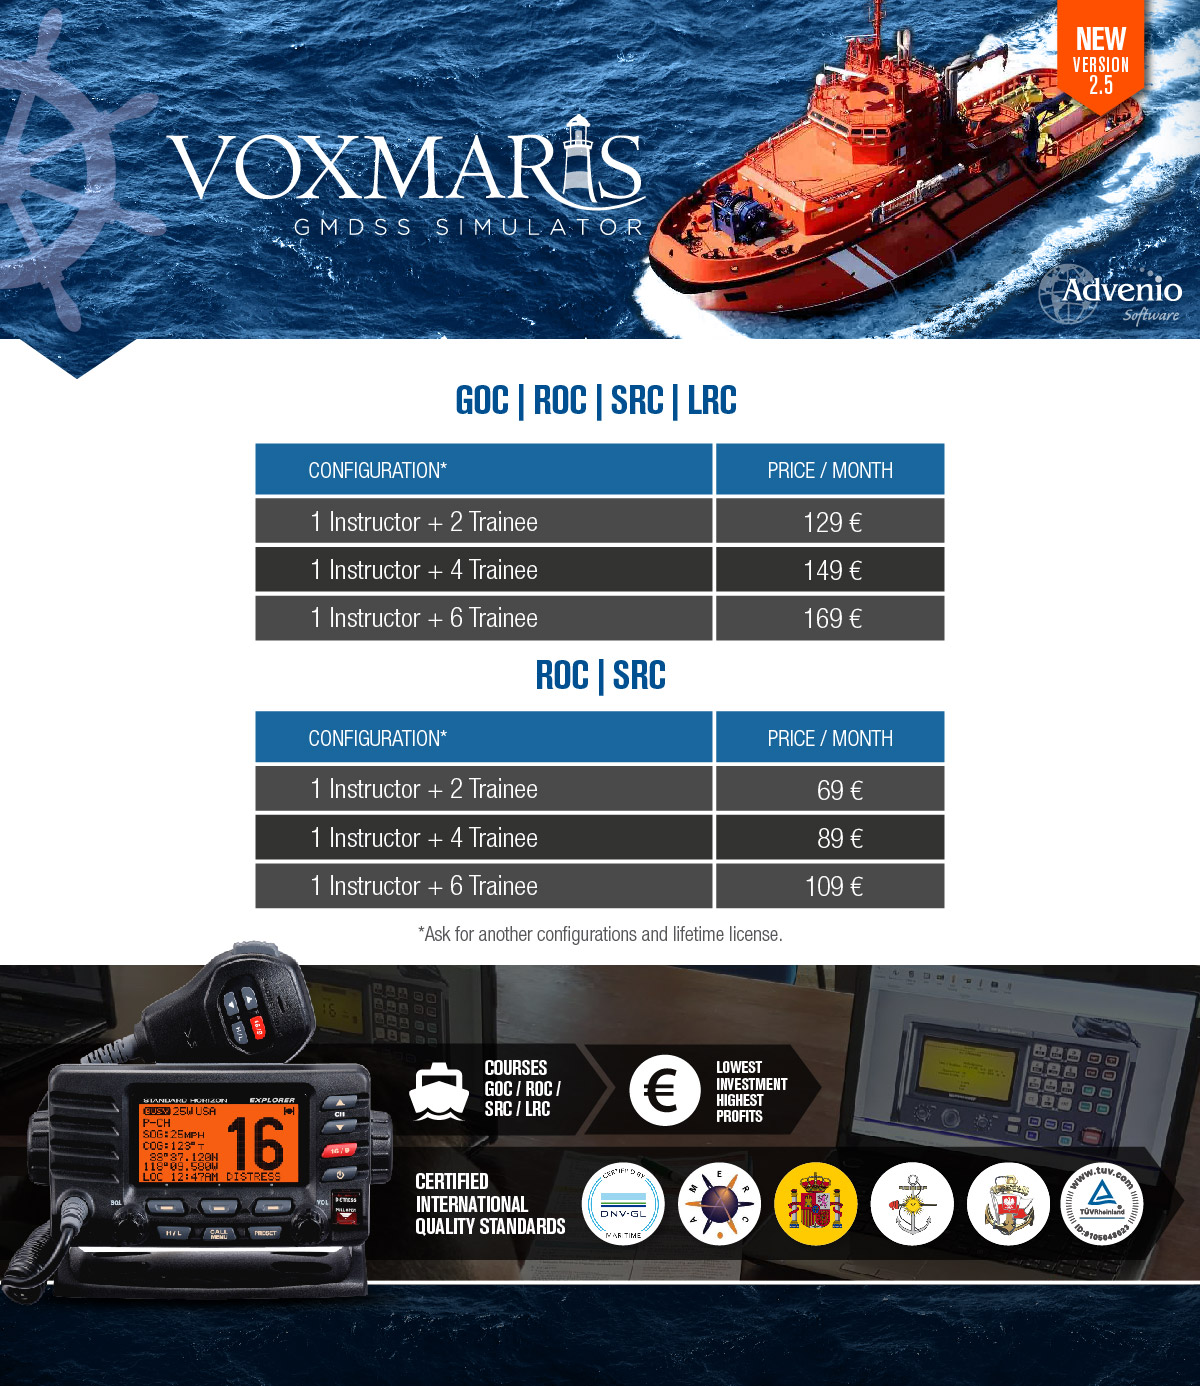 Vox Maris - Prices